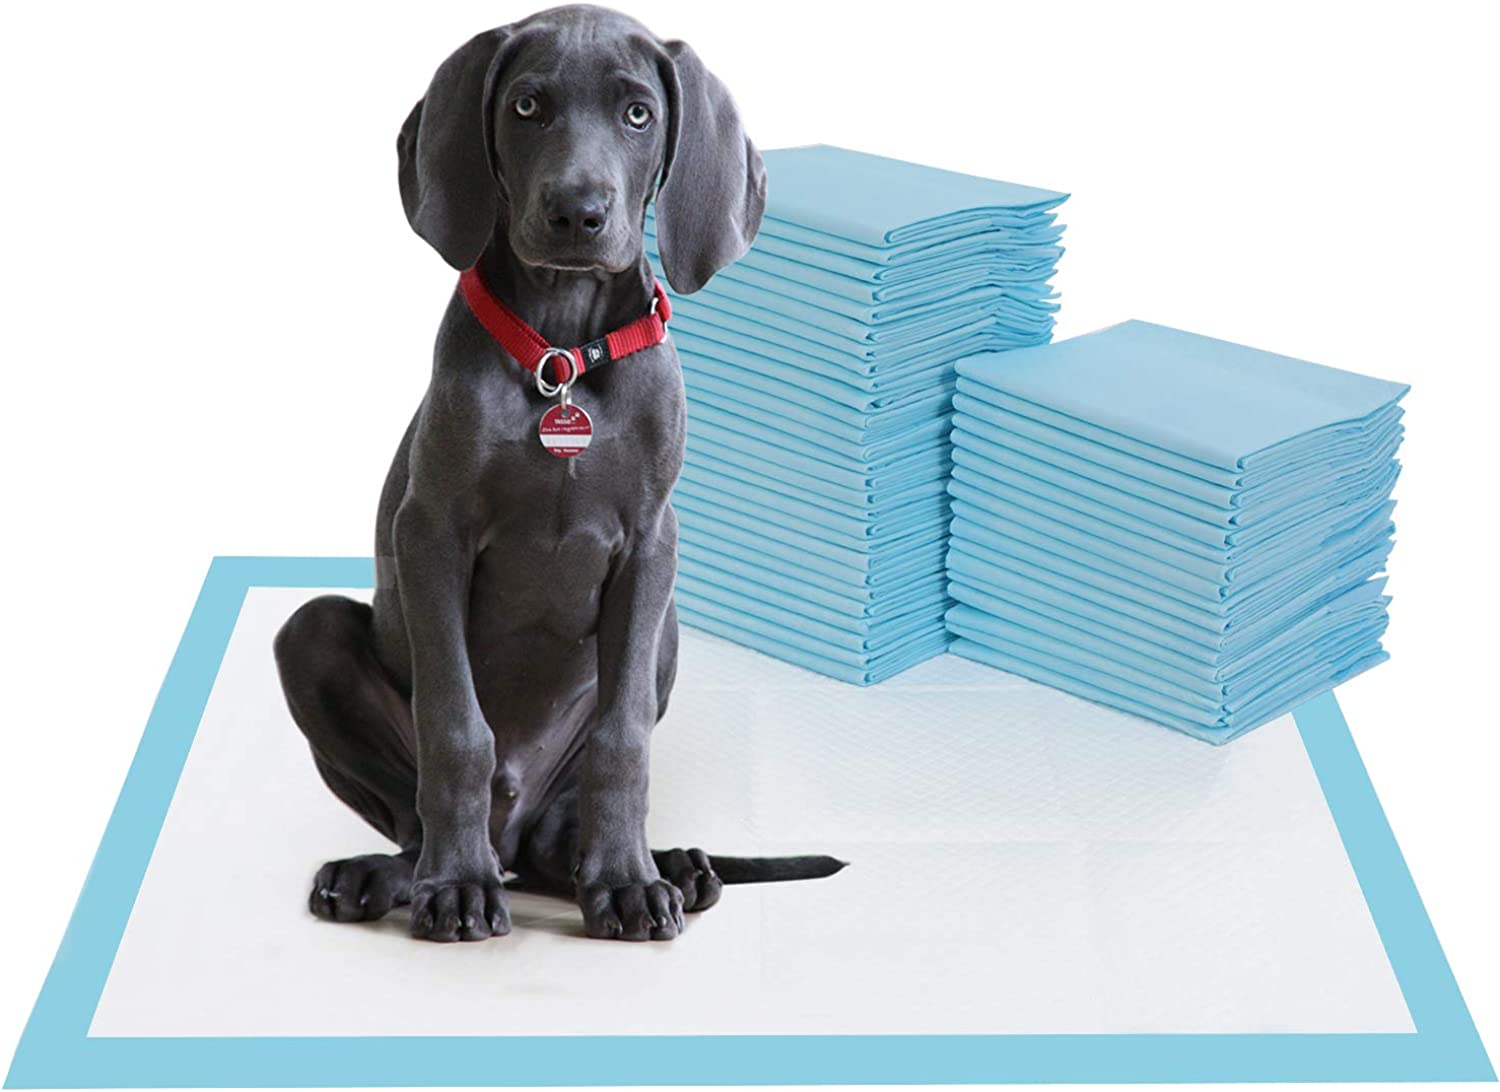 BESTLE Large Pet Training and Puppy Pads Pee Pad for Dogs 24 x24 80 Count Super Absorbent & LeakFree